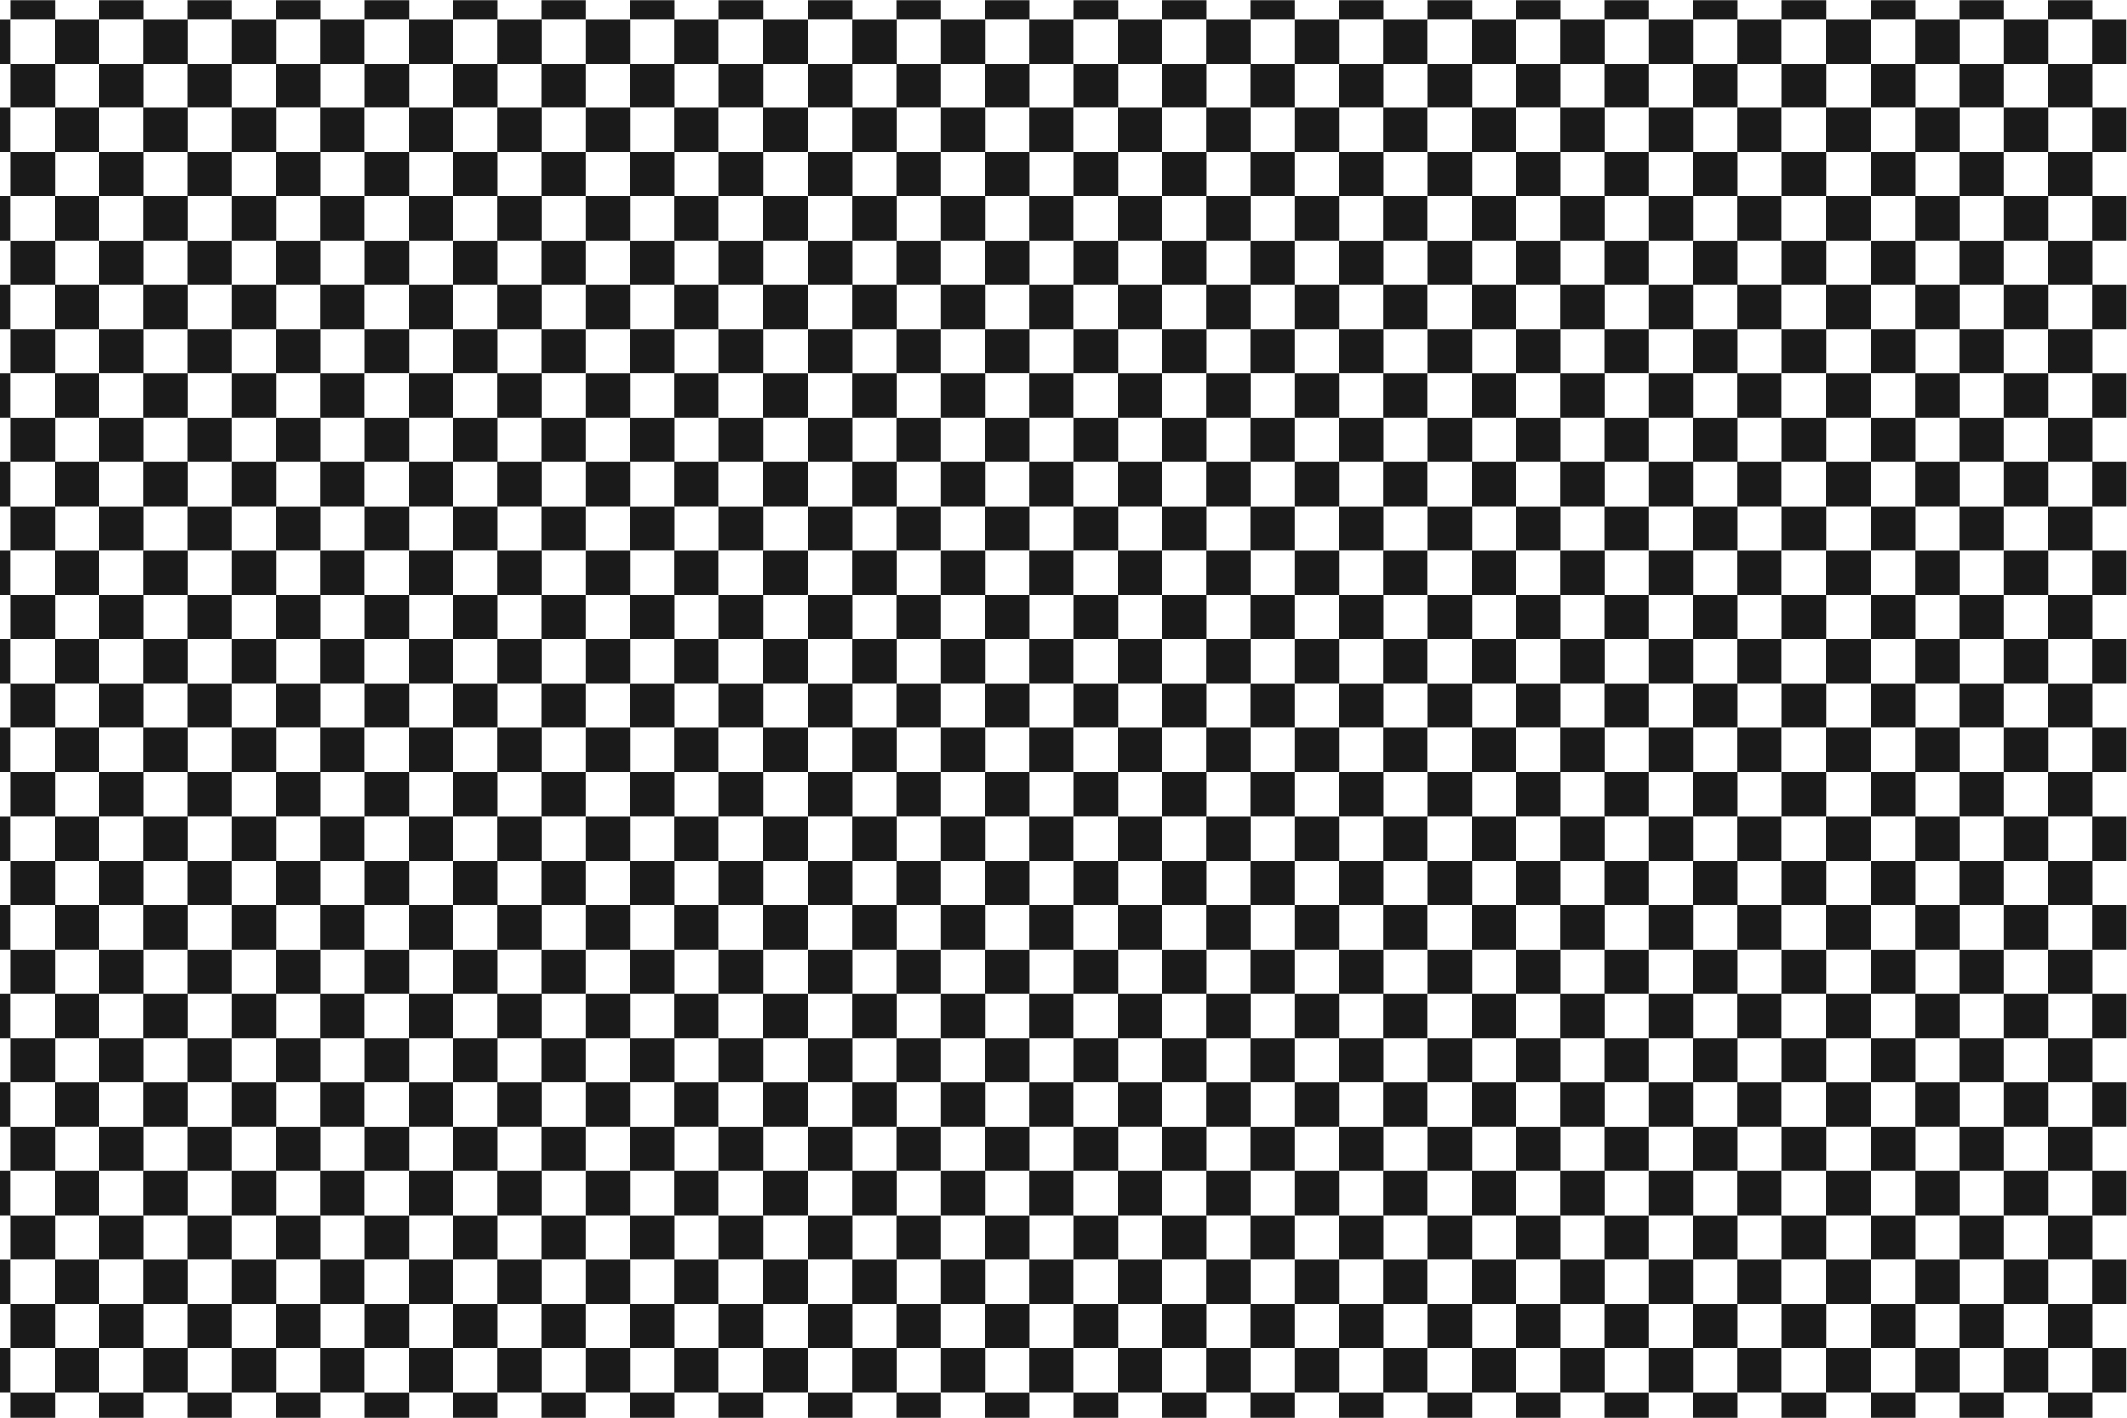 Geometric seamless patterns. B&W. example image 5